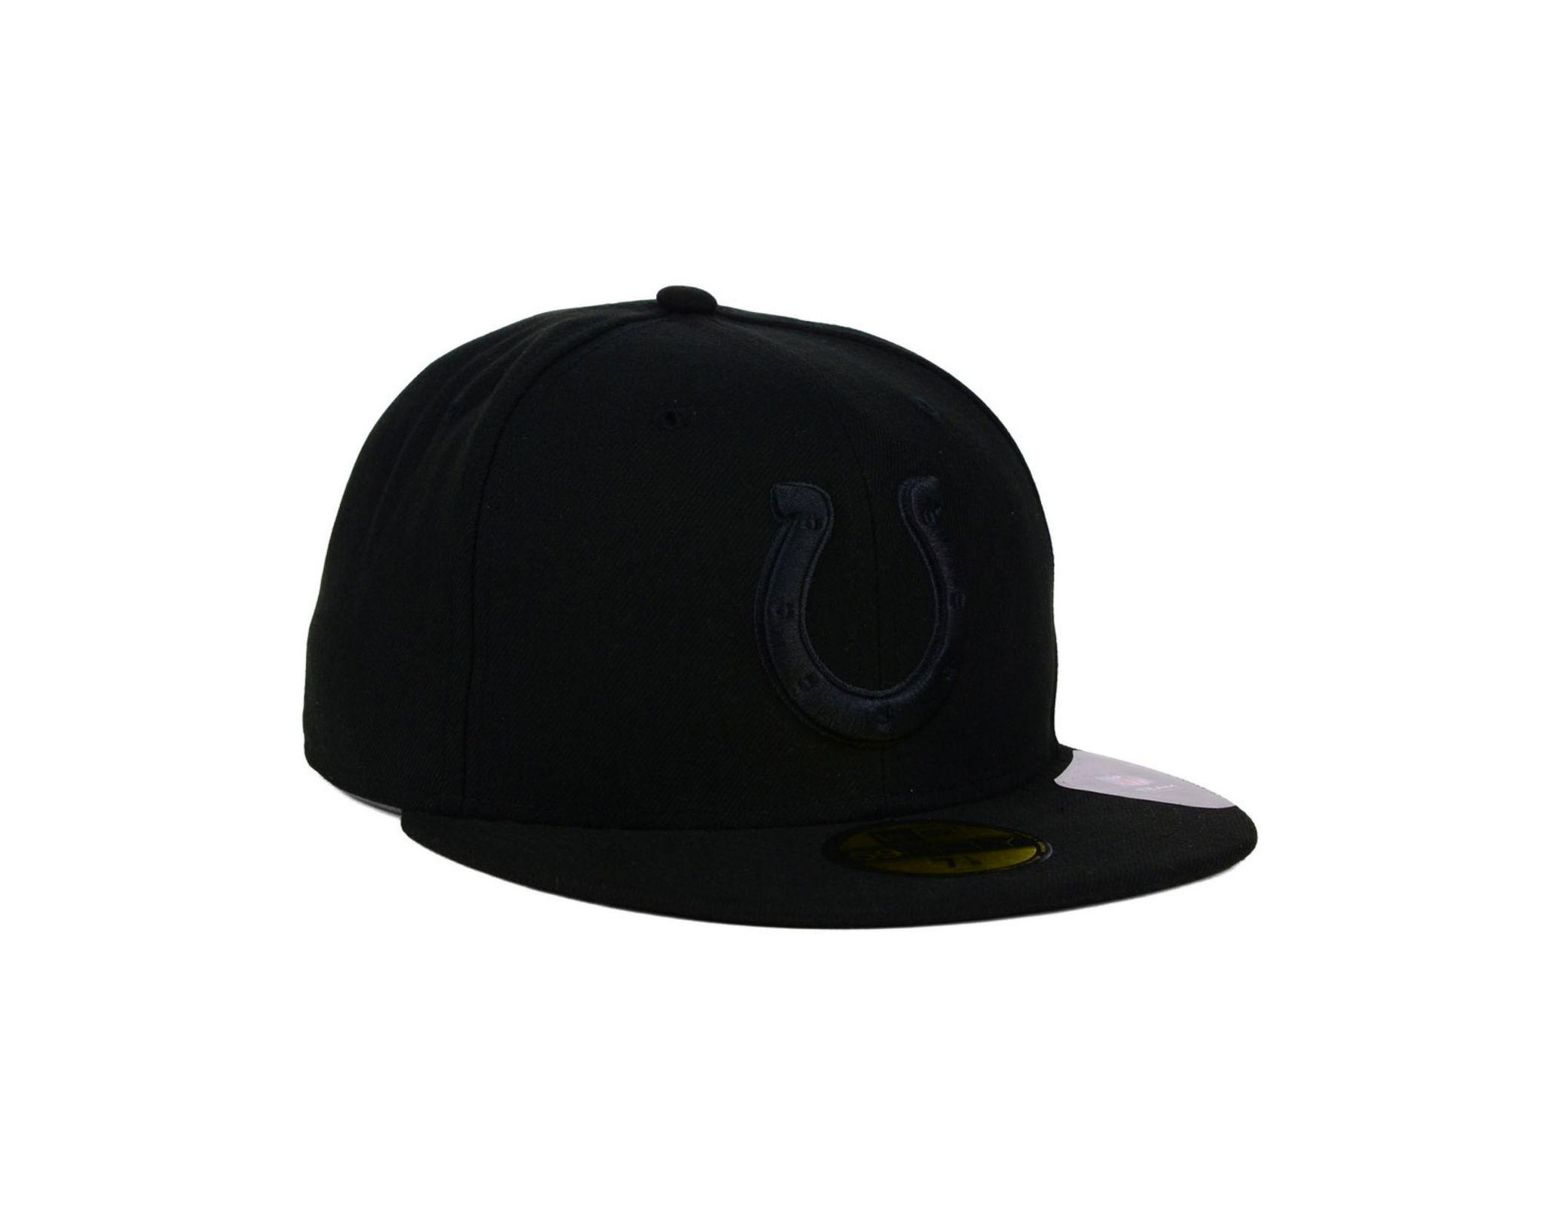 size 40 55455 9838a KTZ Indianapolis Colts Black On Black 59fifty Cap in Black for Men - Lyst